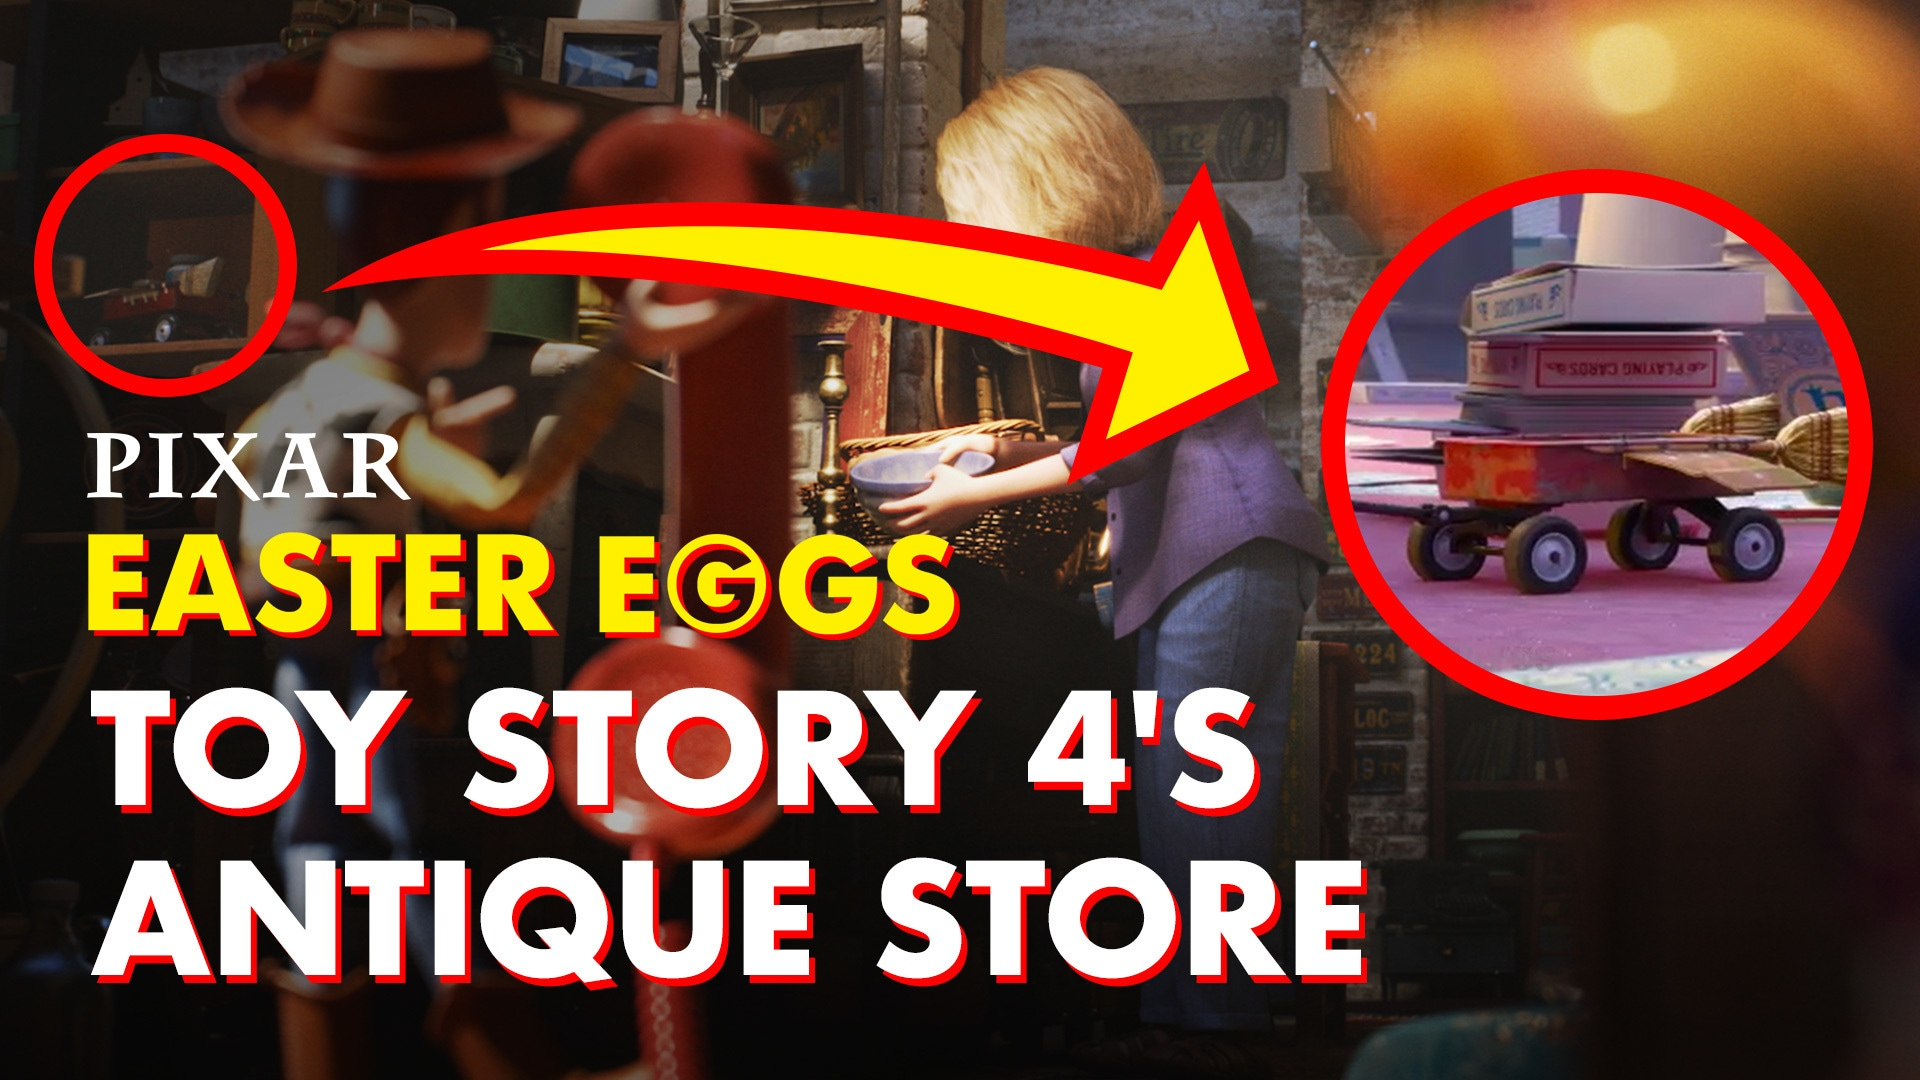 Toy Story 4 Antique Store Easter Eggs   Pixar Did You Know